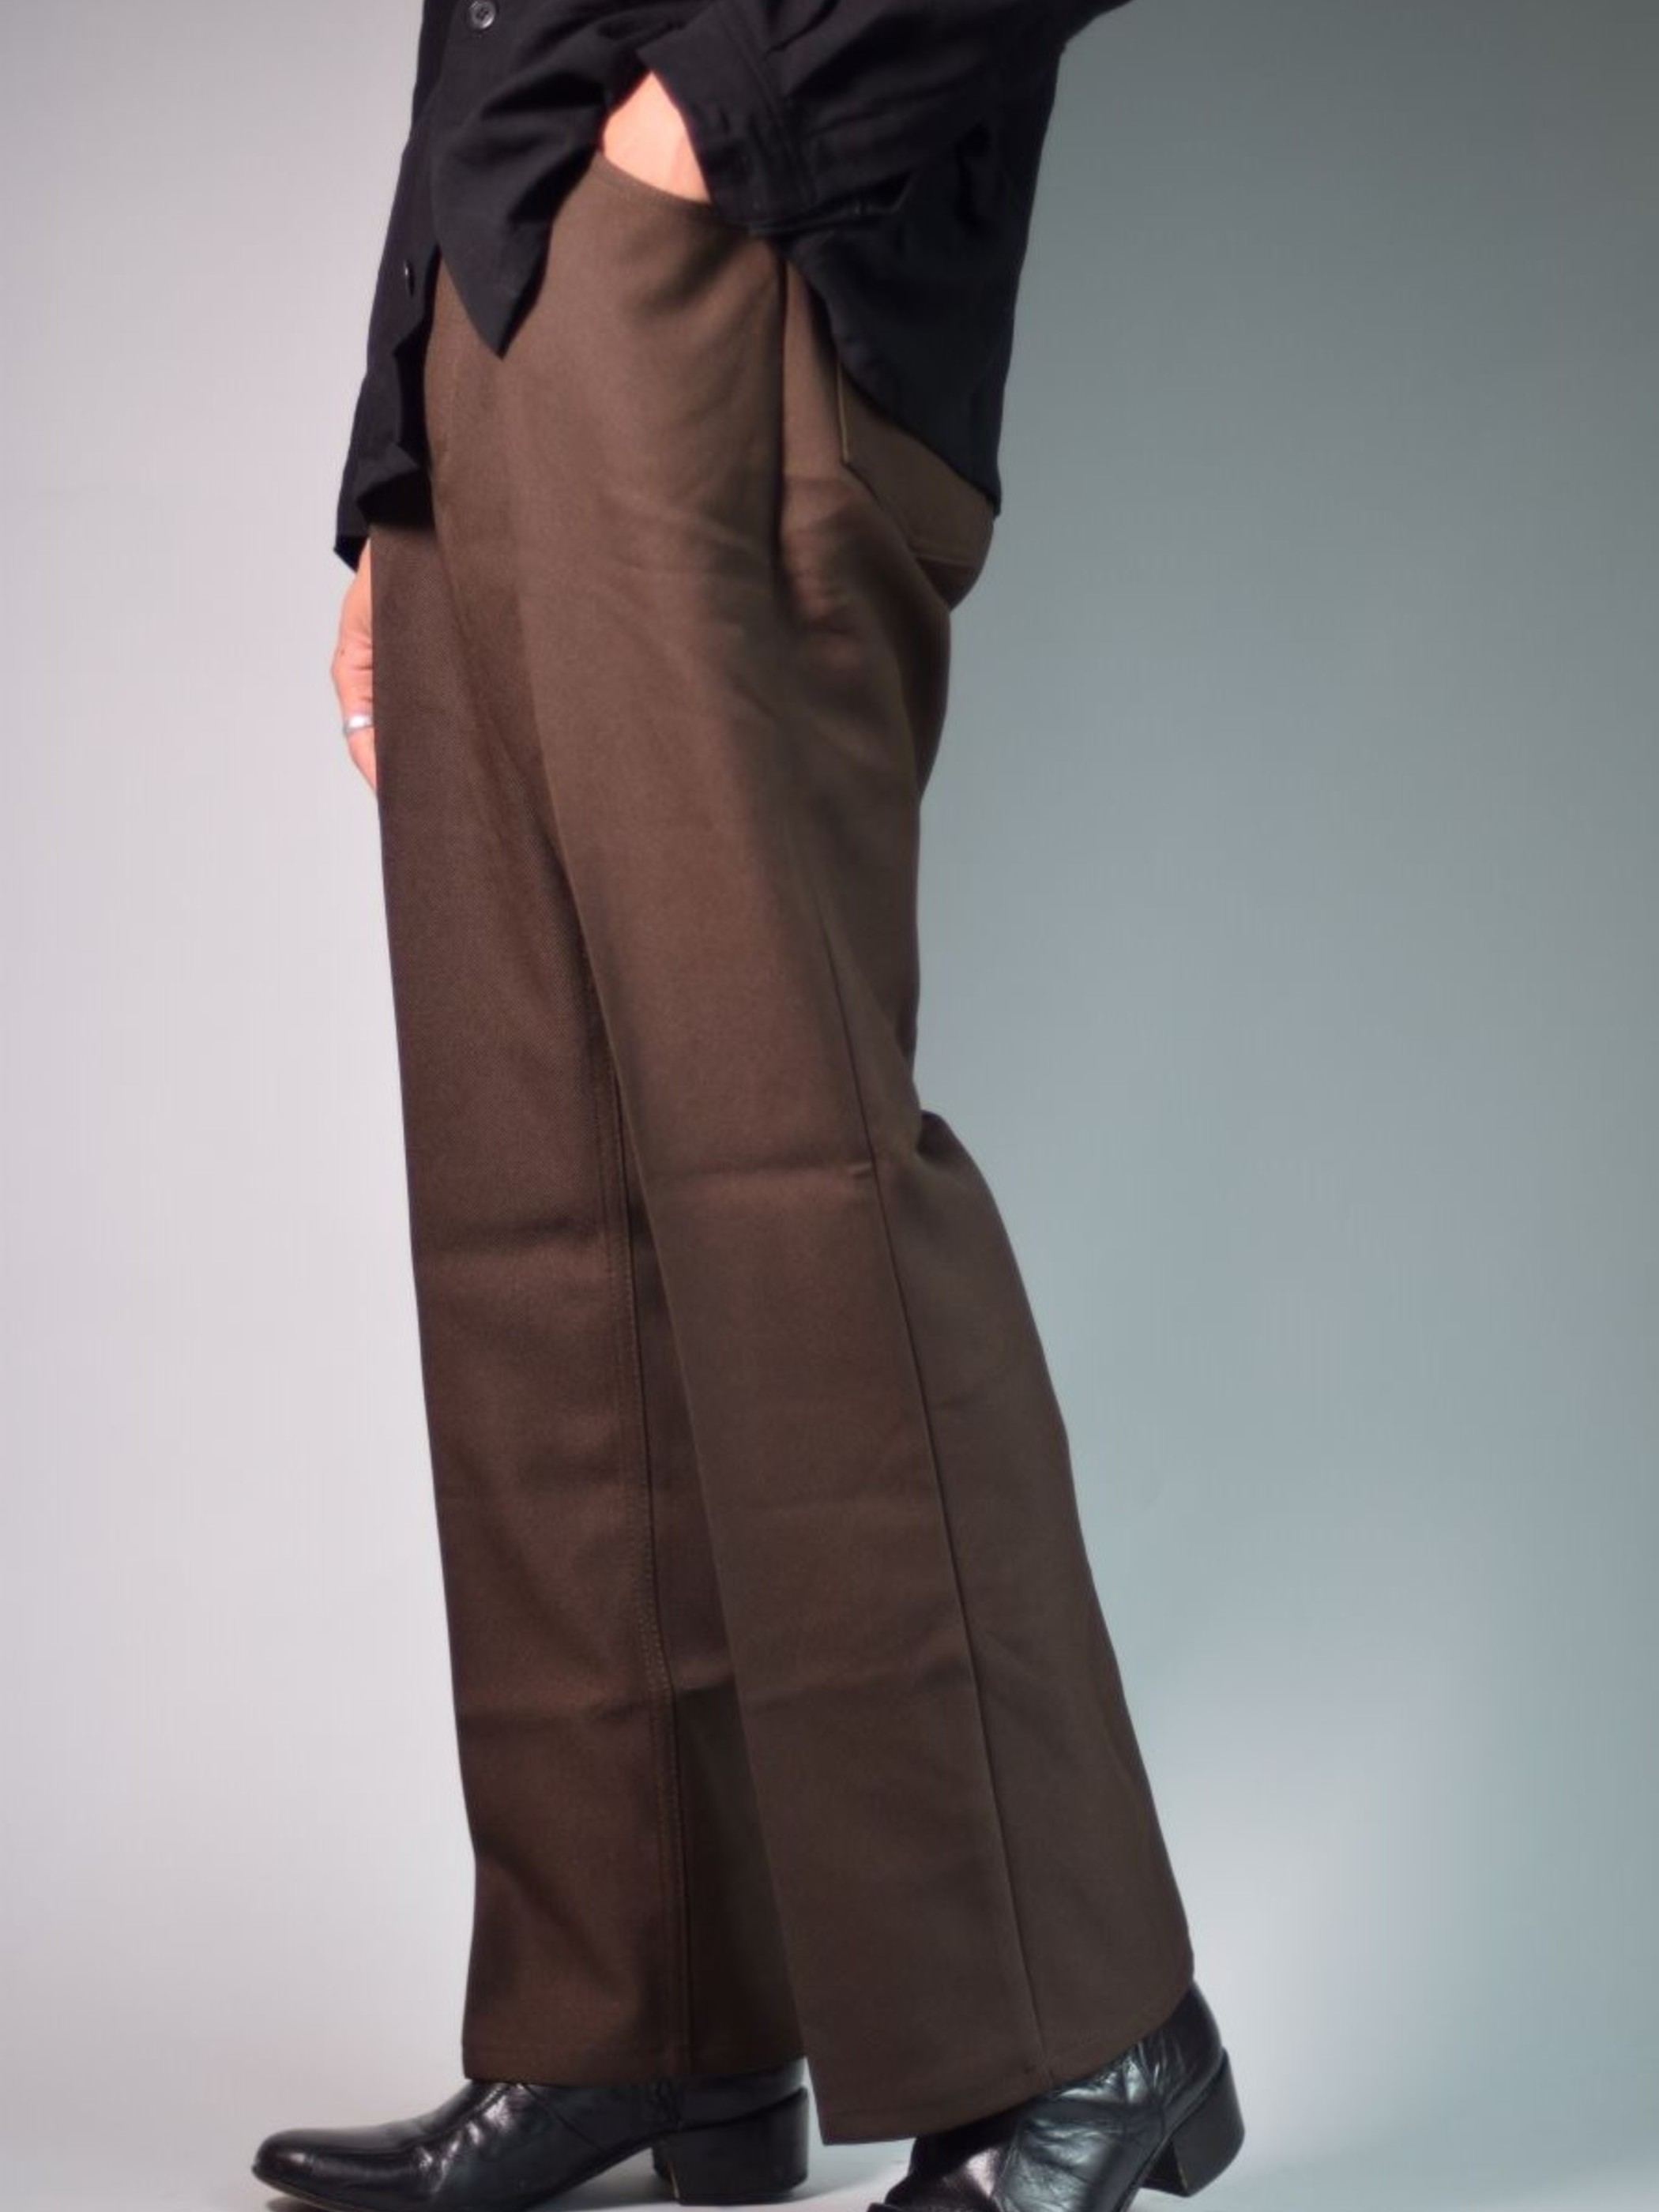 Remake Product WRANGLER REMAKE STA-PREST WRANCHER DRESS JEANS BROWN